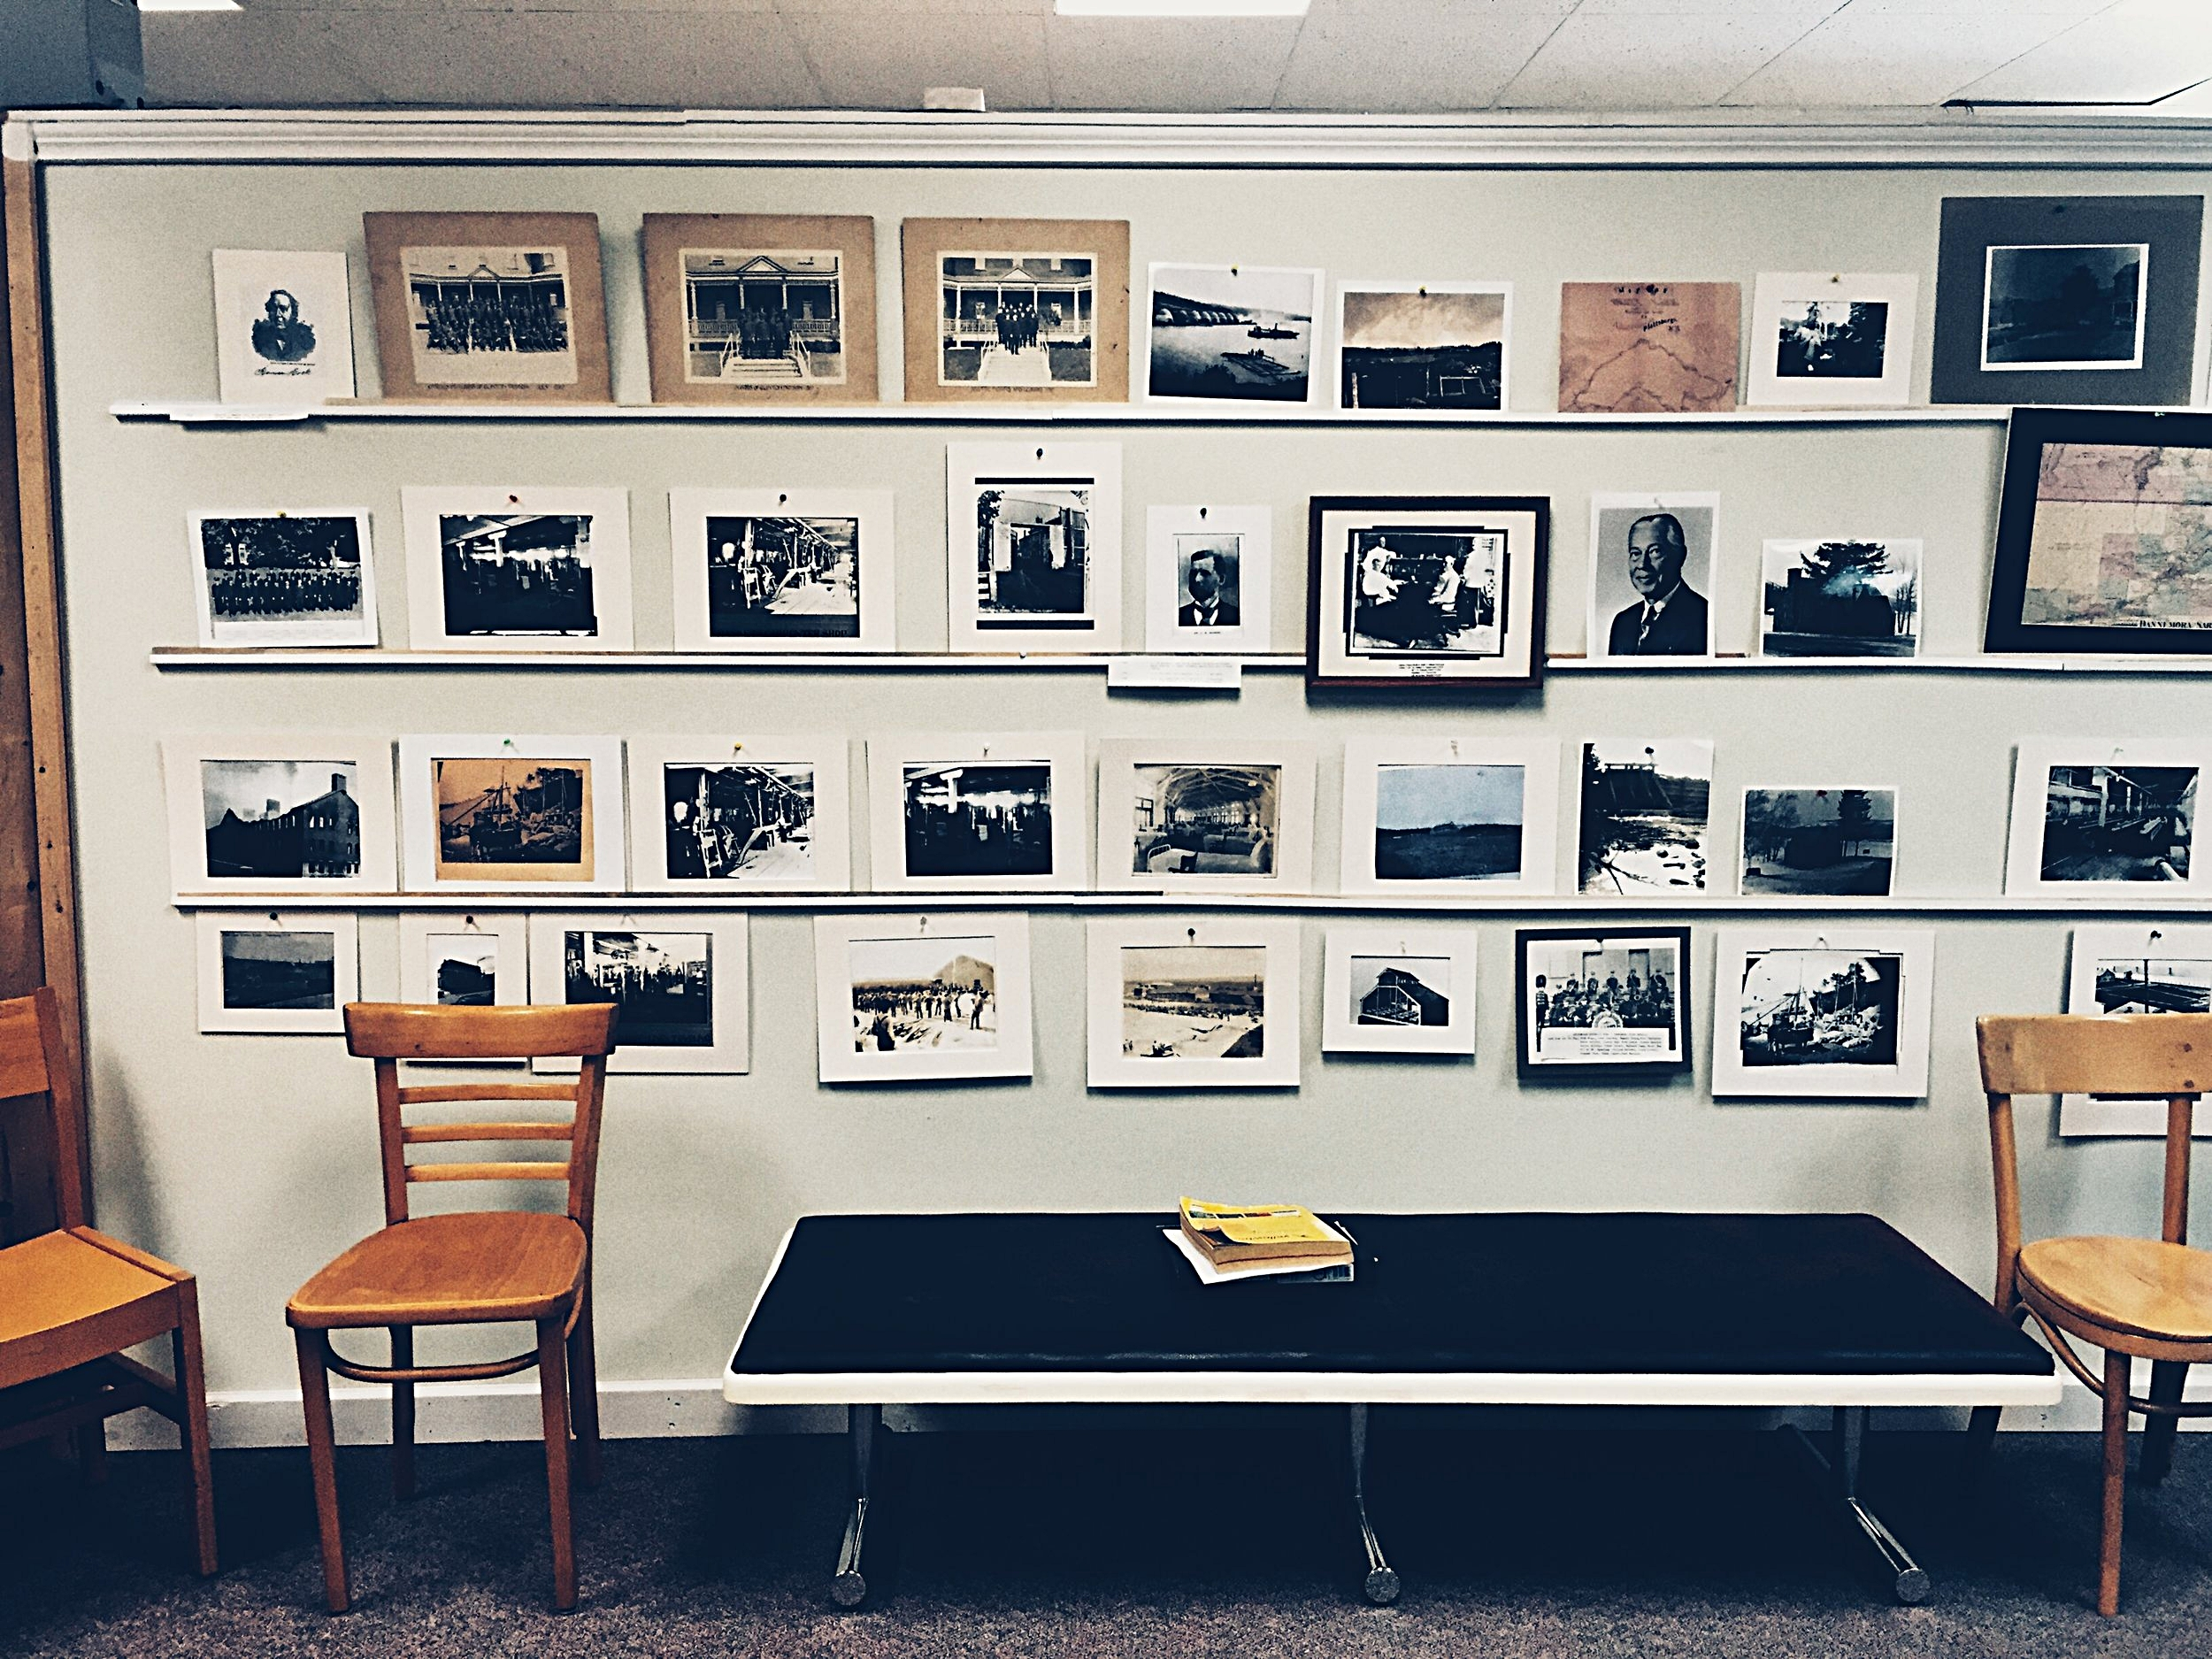 """Photographs of Dannemora and Clinton Prison, curated by historian Walter """"Pete"""" Light for the Museum at the Dannemora Free Library. (Chelsia Rose Marcius/August 14, 2016)"""